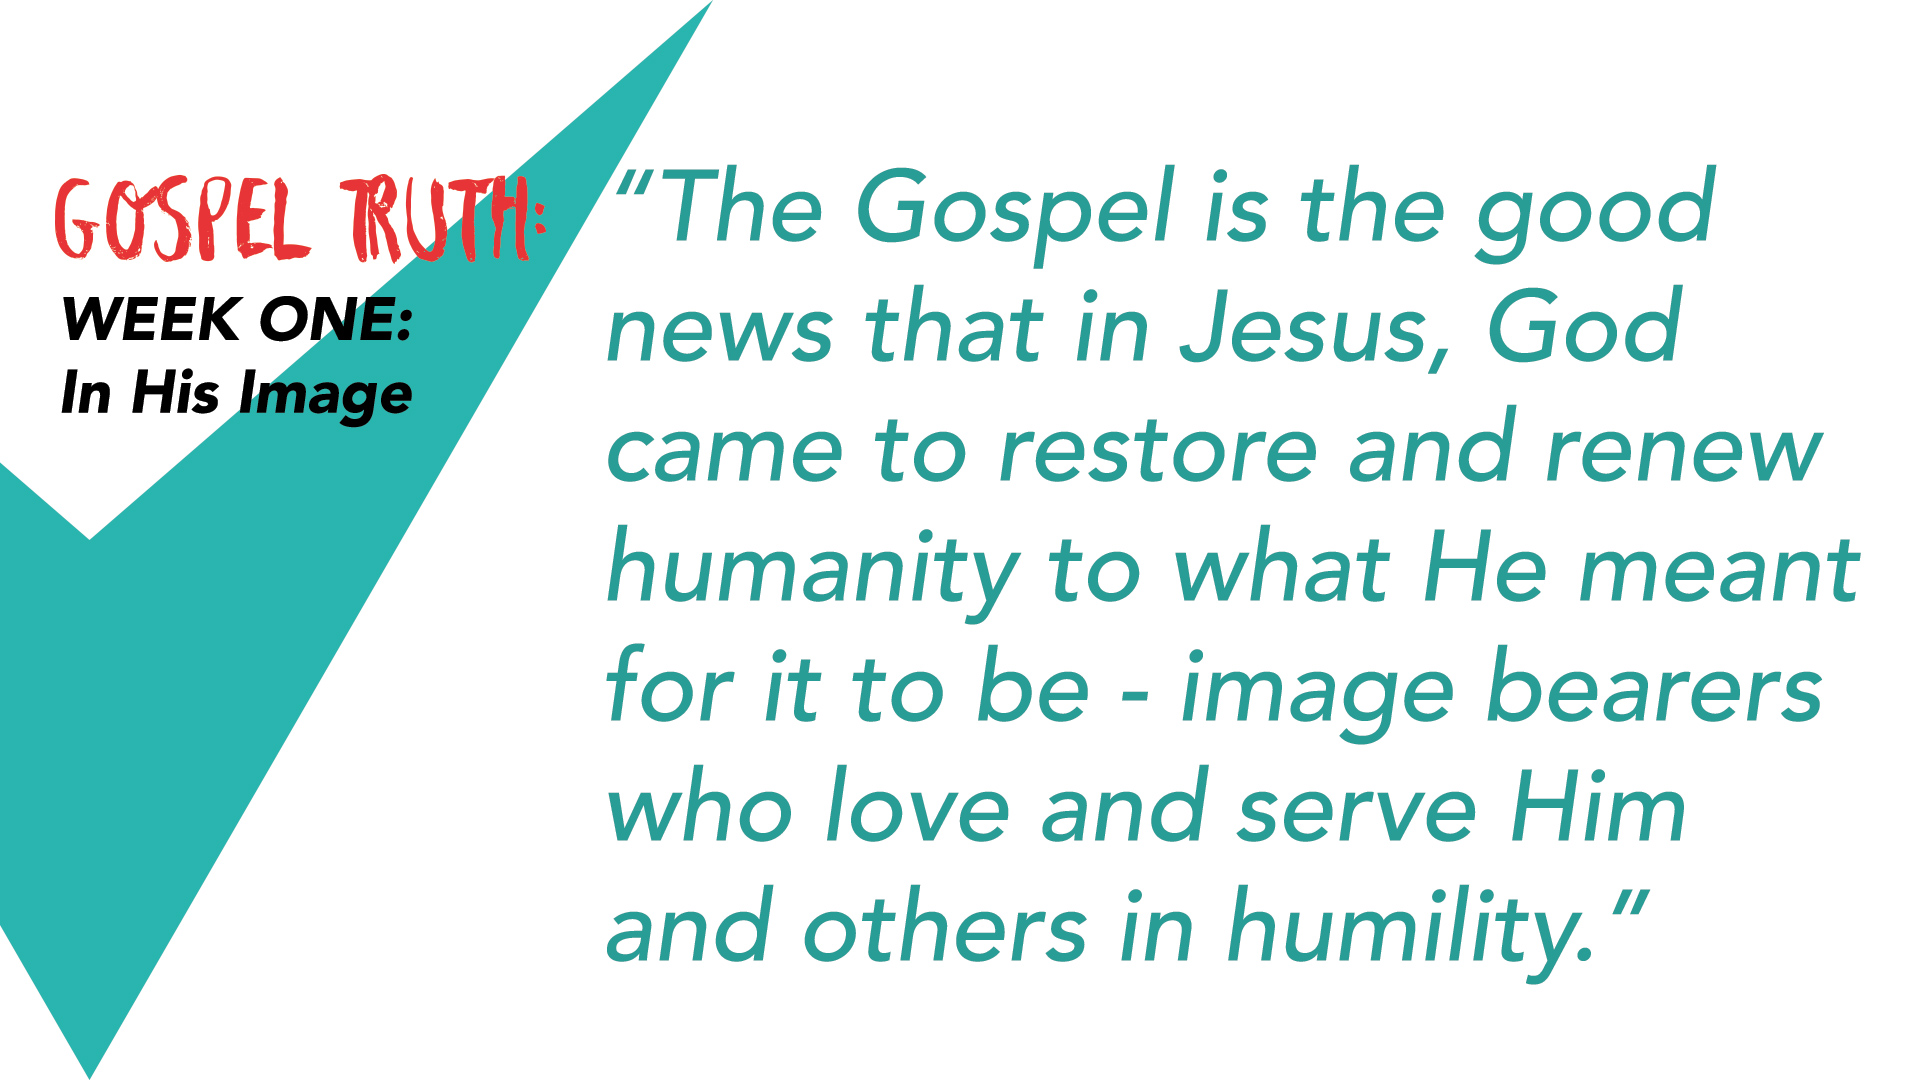 """The Gospel is the good news that in Jesus, God came to restore and renew humanity to what He meant for it to be- image bearers who love and serve Him and others in humility."""